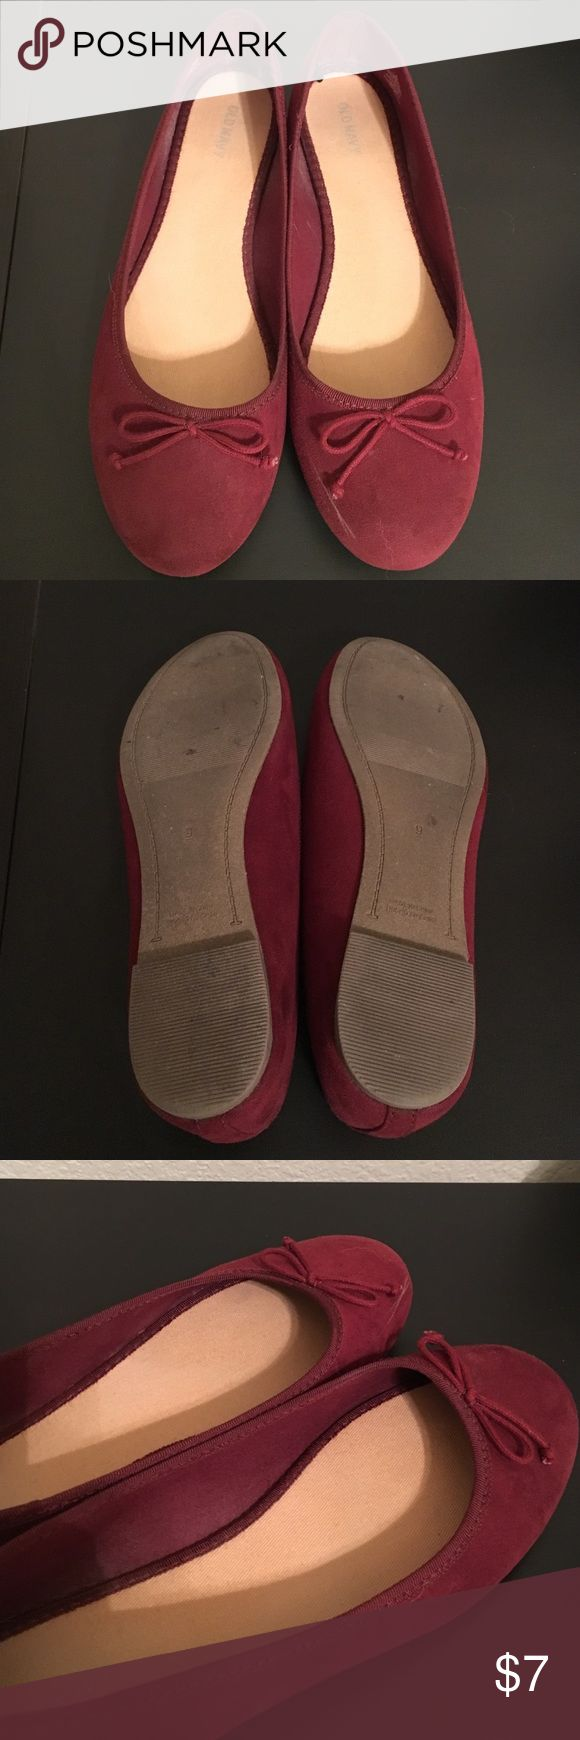 Old Navy Ballet Flats Gently used, these flats have one mark on the right toe. Color is actually maroon. Old Navy Shoes Flats & Loafers